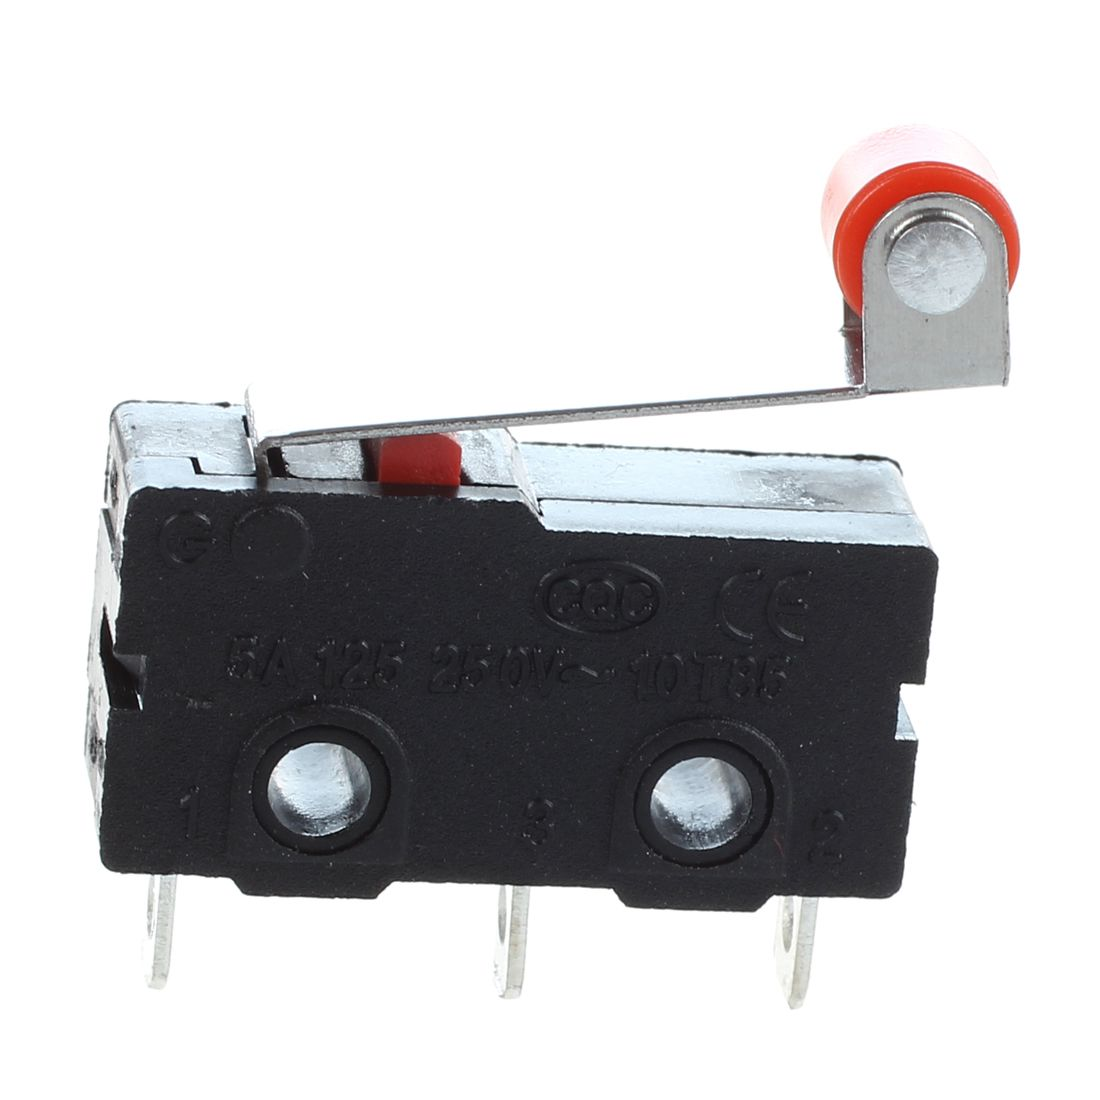 10 Pcs Mini Micro Limit Switch Roller Lever Arspdt Snap